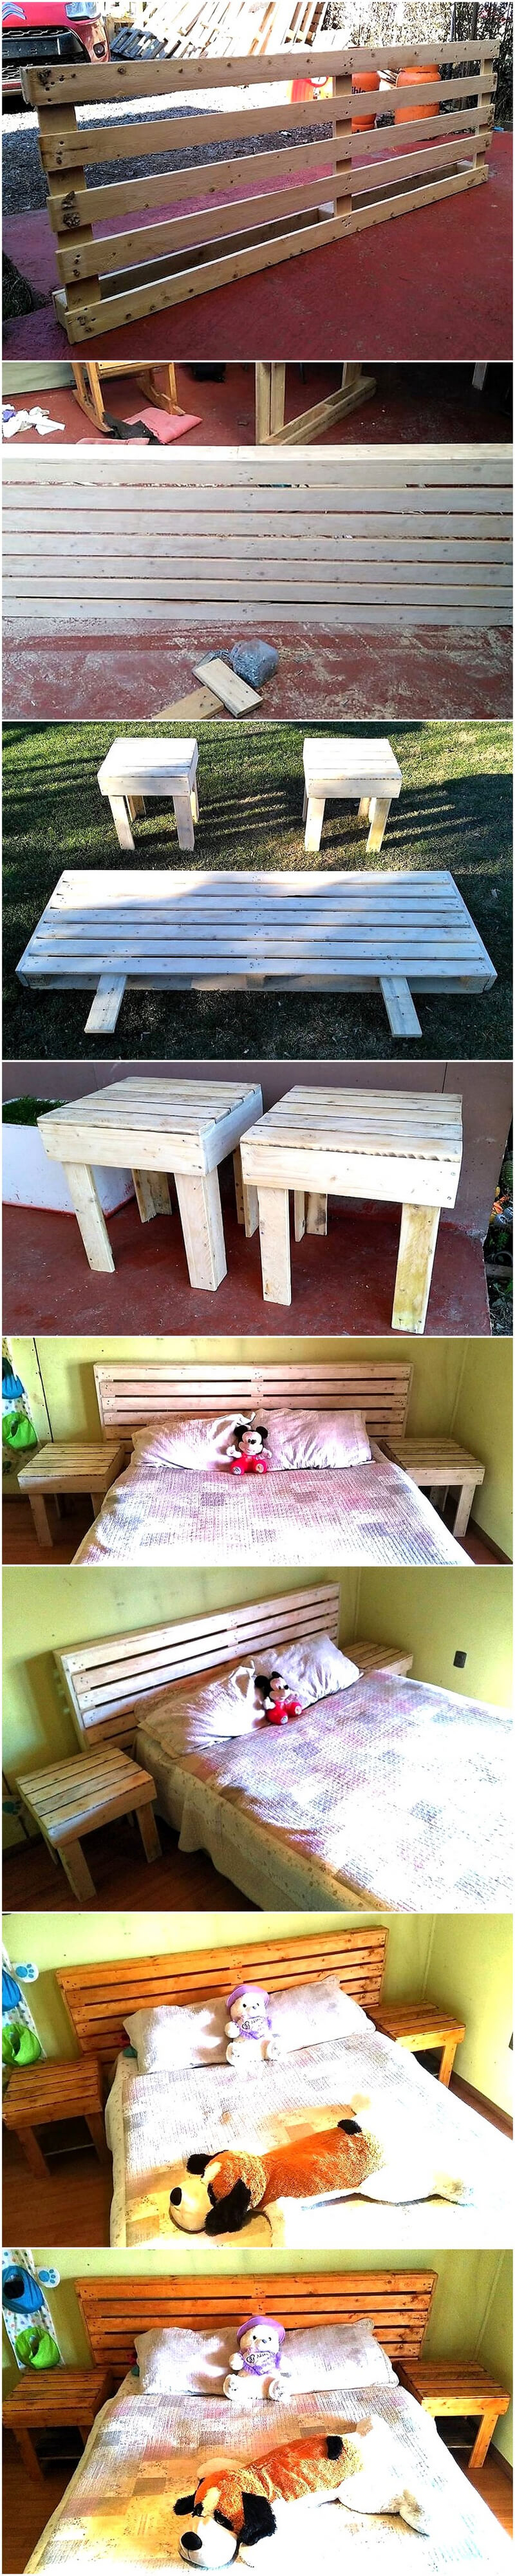 diy pallet headboard with side tables